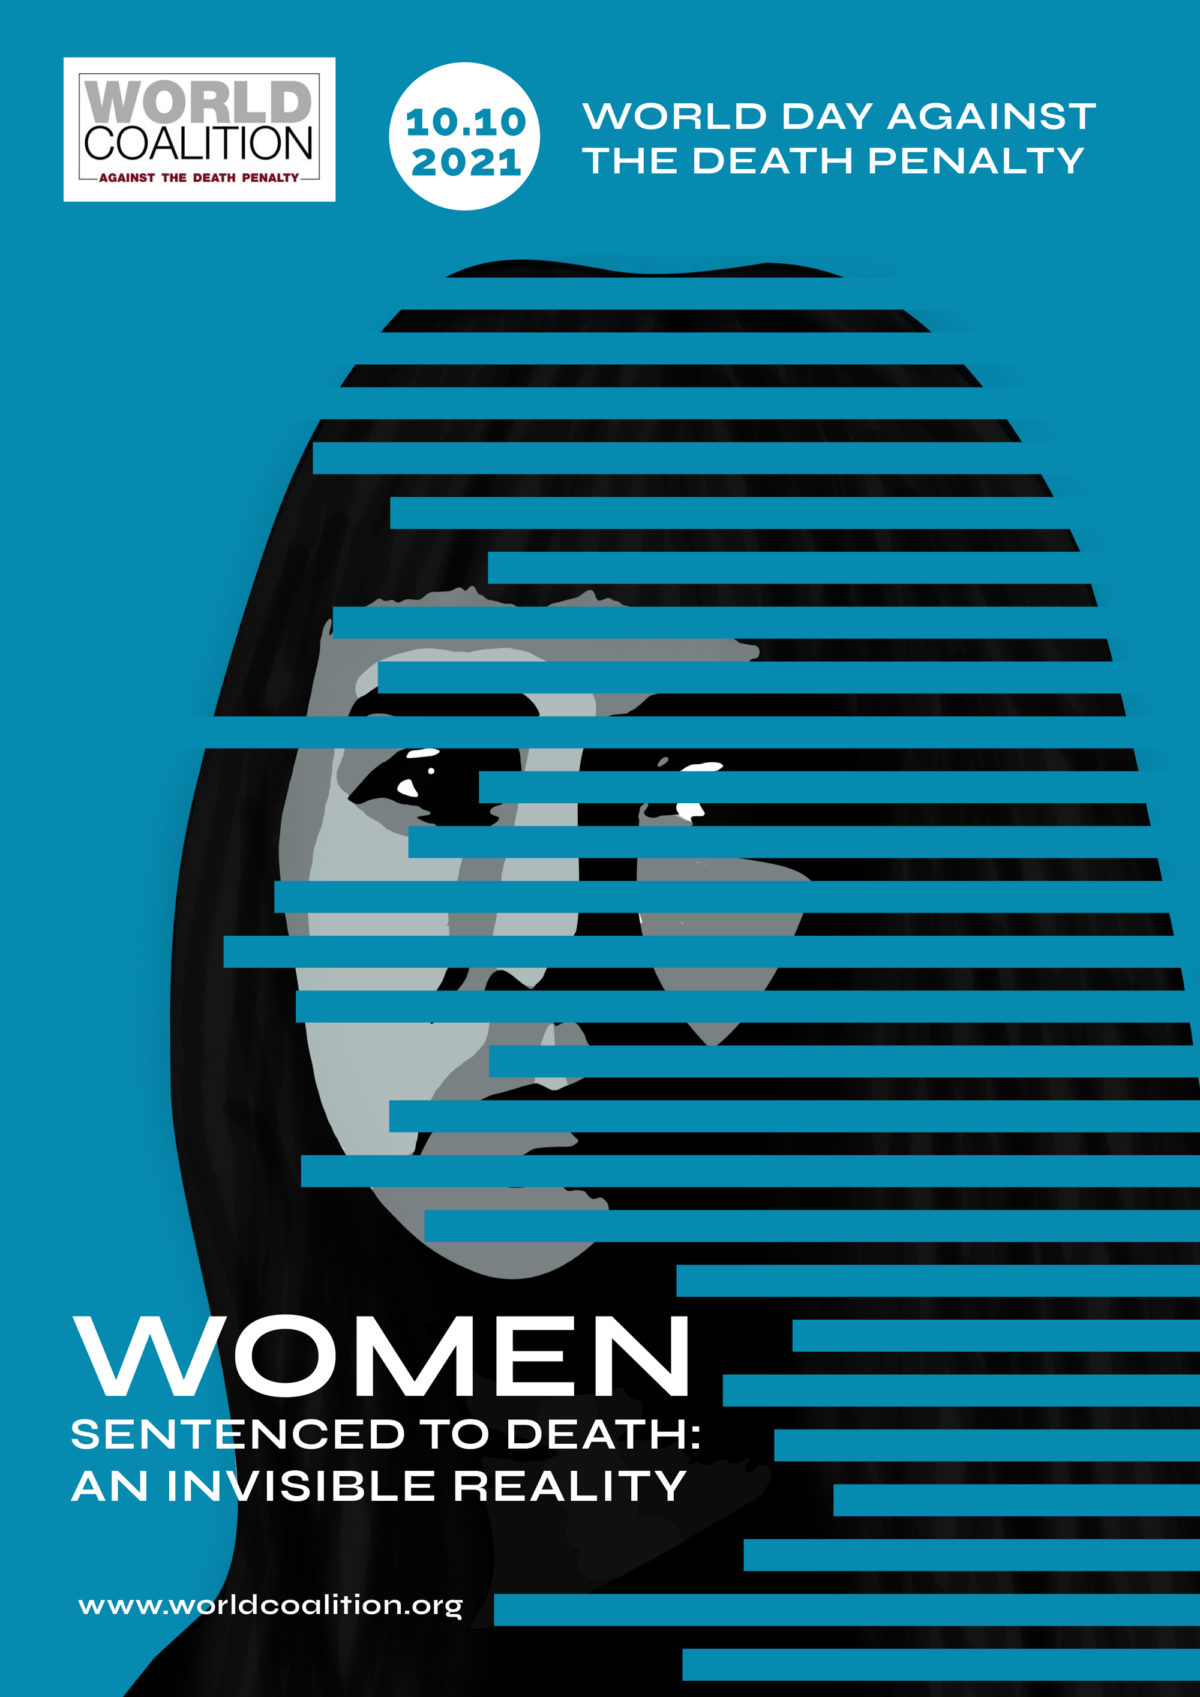 19th World day against the death penalty -Women sentenced to death: an invisible reality